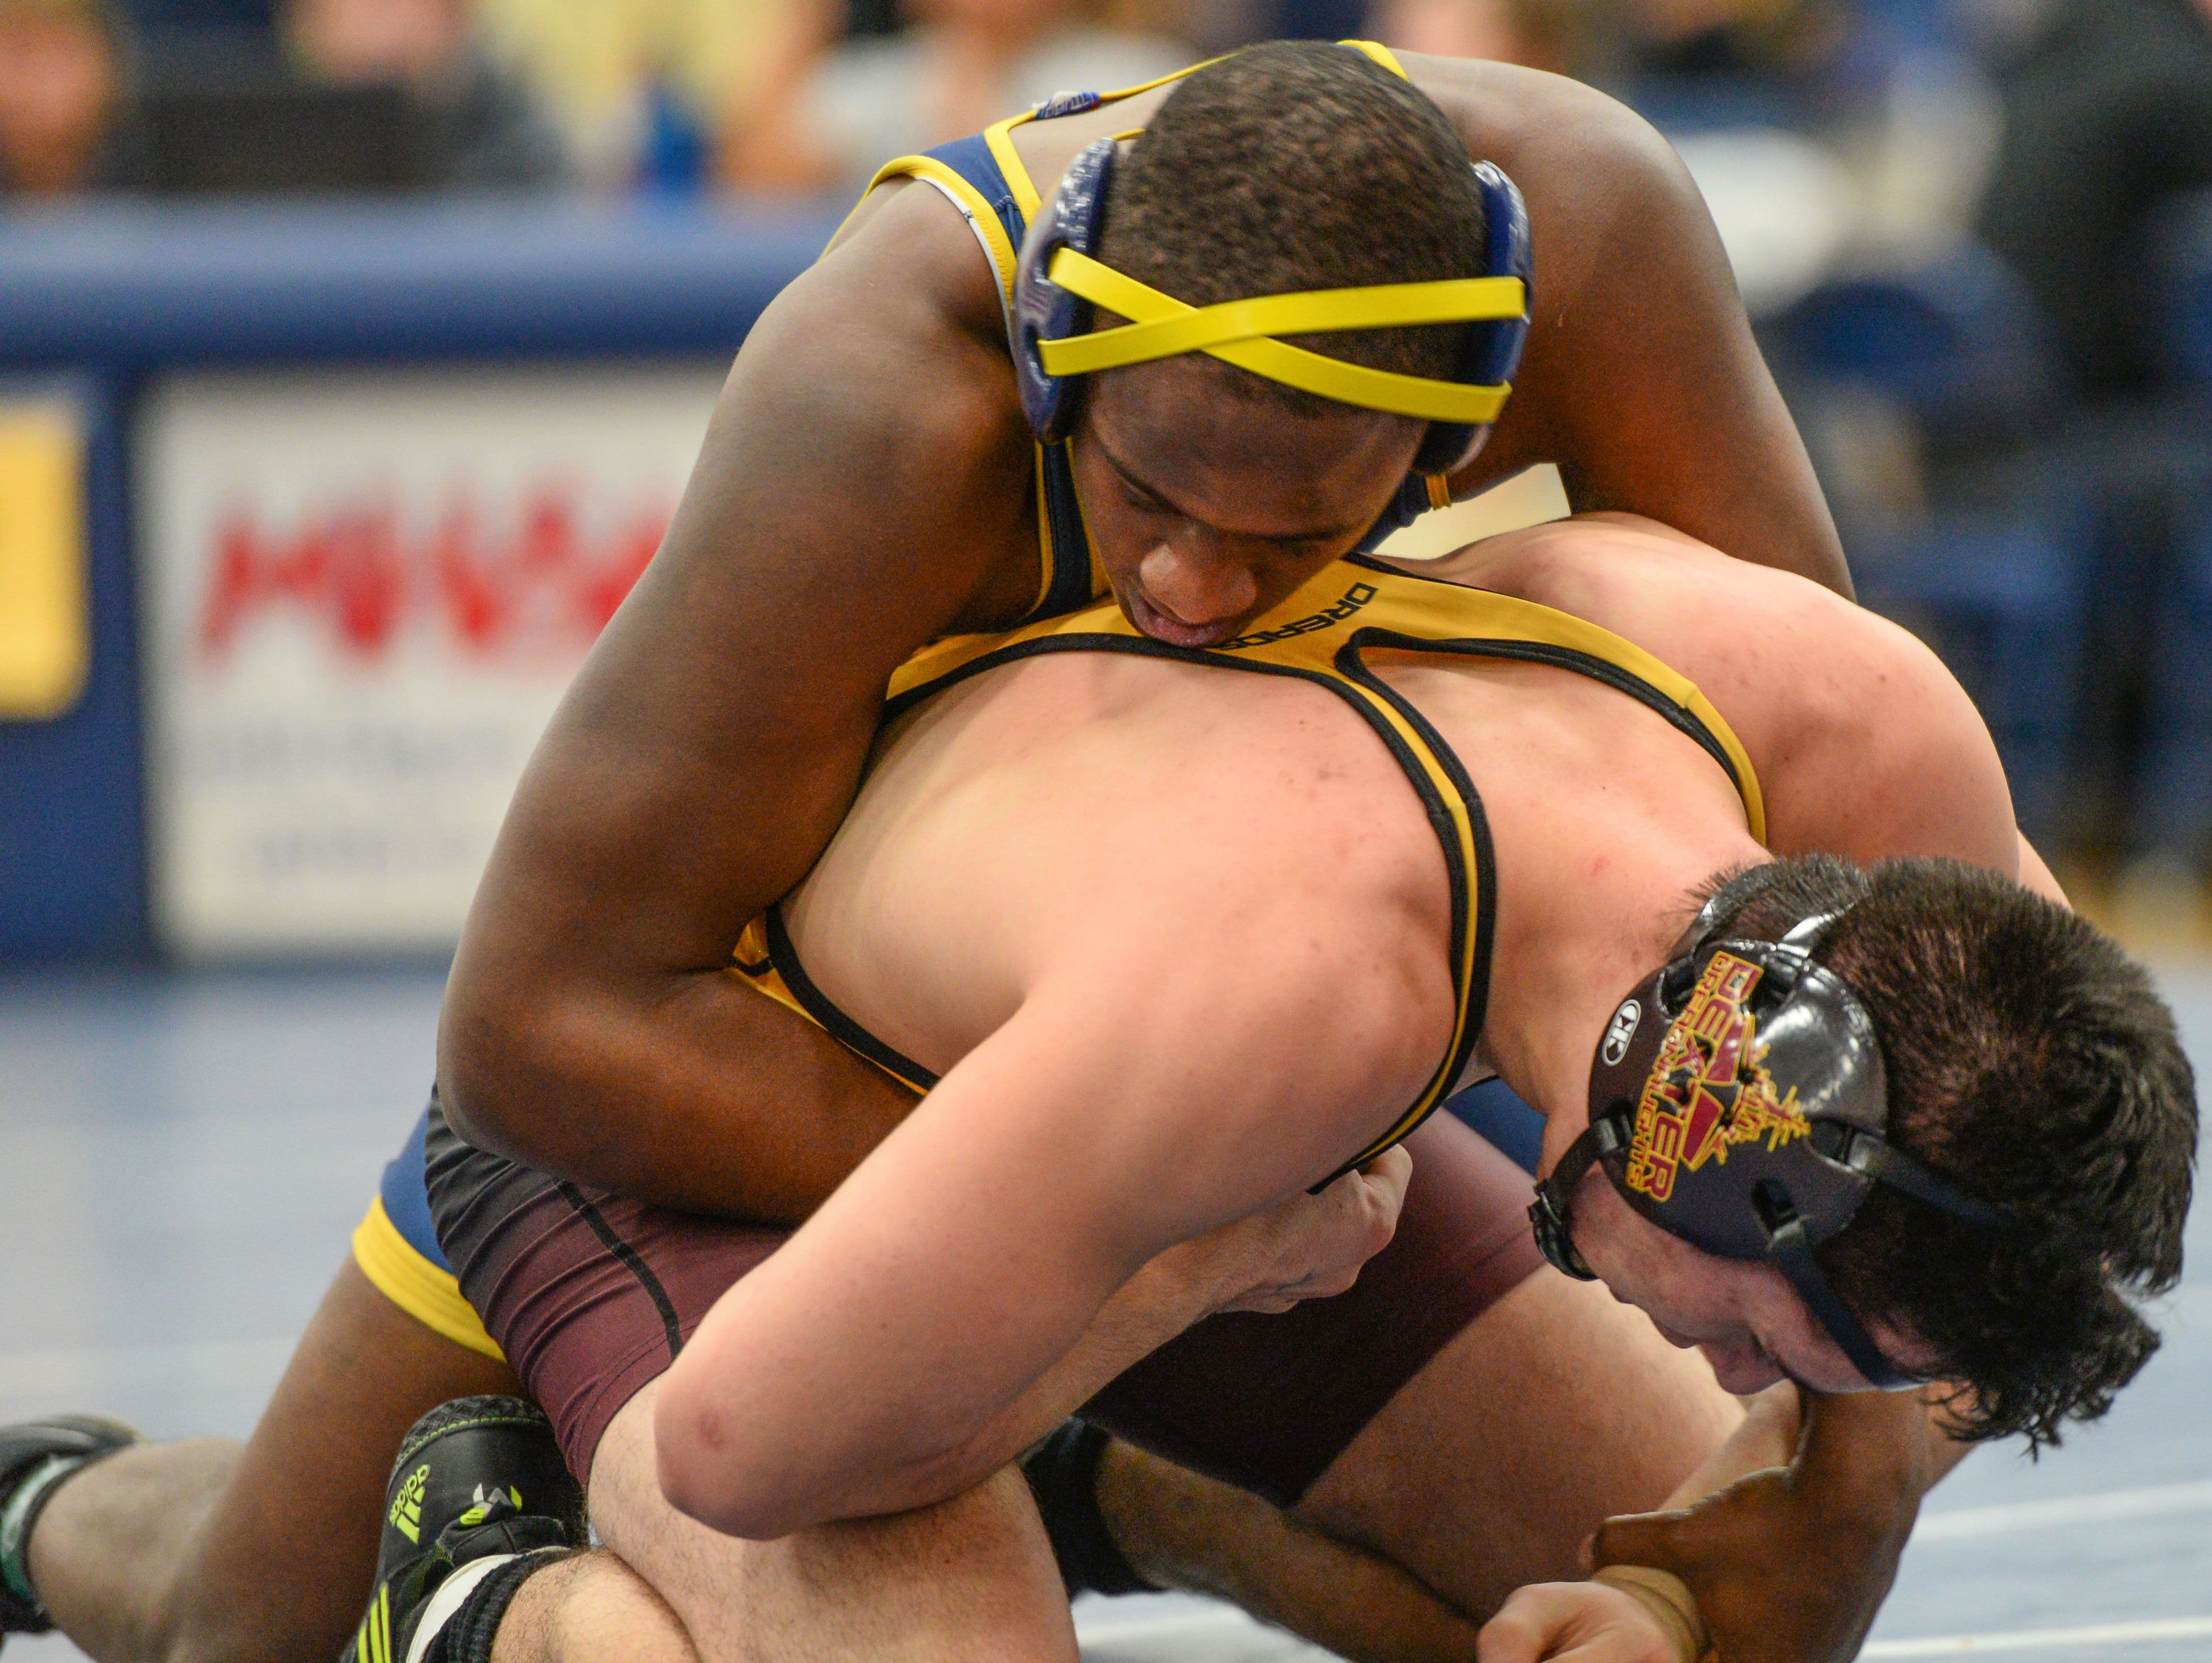 Eastern's Andwele Pulliam, top, over-powers Austin Aceves from Dexter and wins 12-3 in the 171 weight class at the D2 District tournament held at DeWitt Saturday, February 11, 2017.